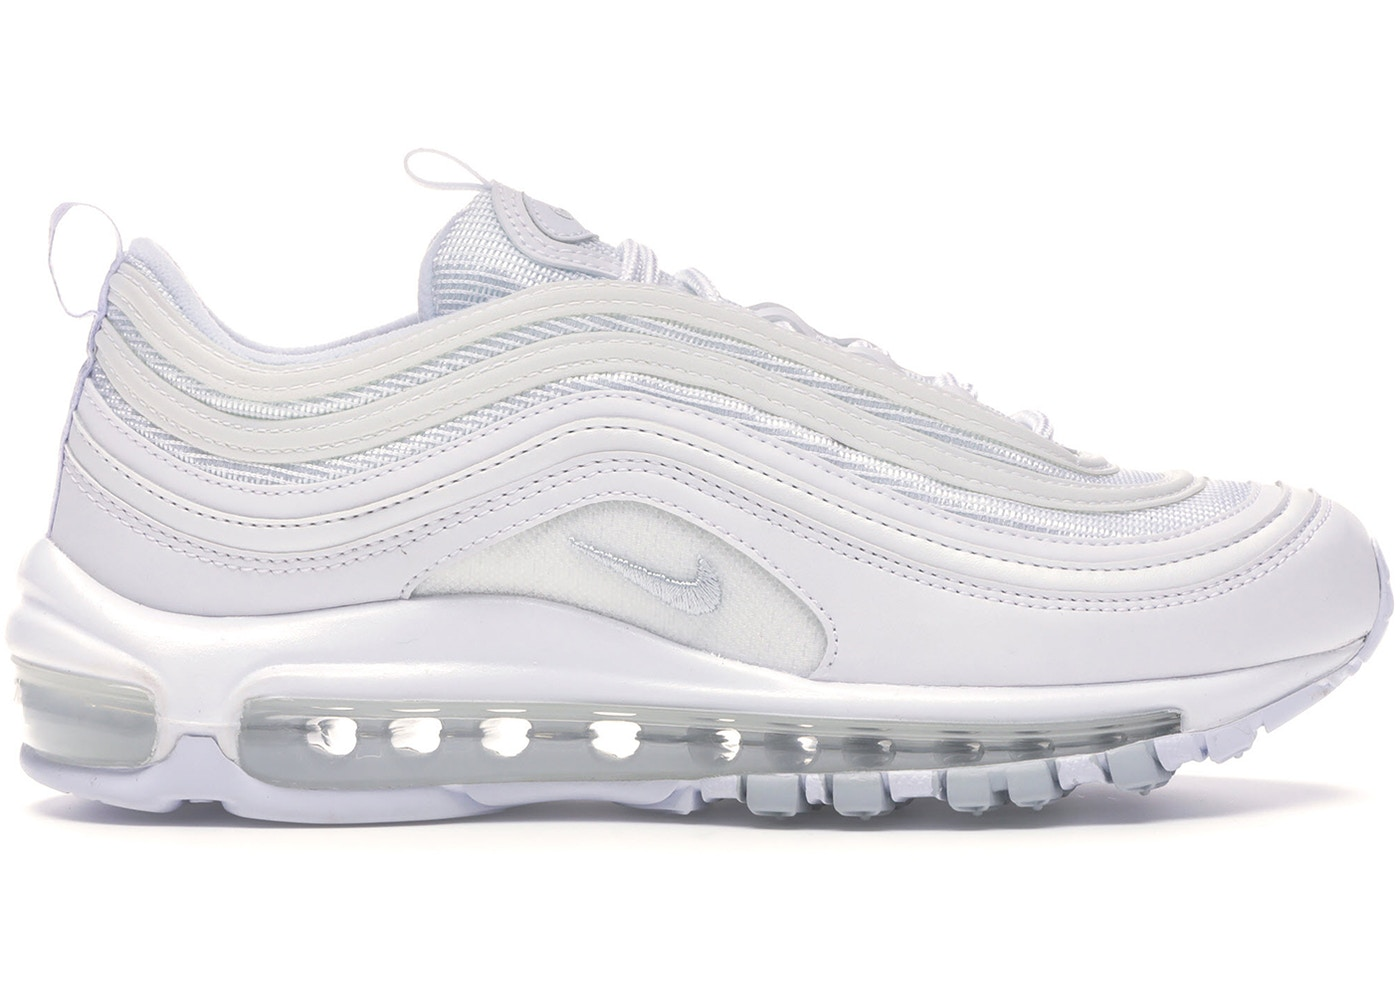 a9aeacbd Buy Nike Air Max 97 Shoes & Deadstock Sneakers